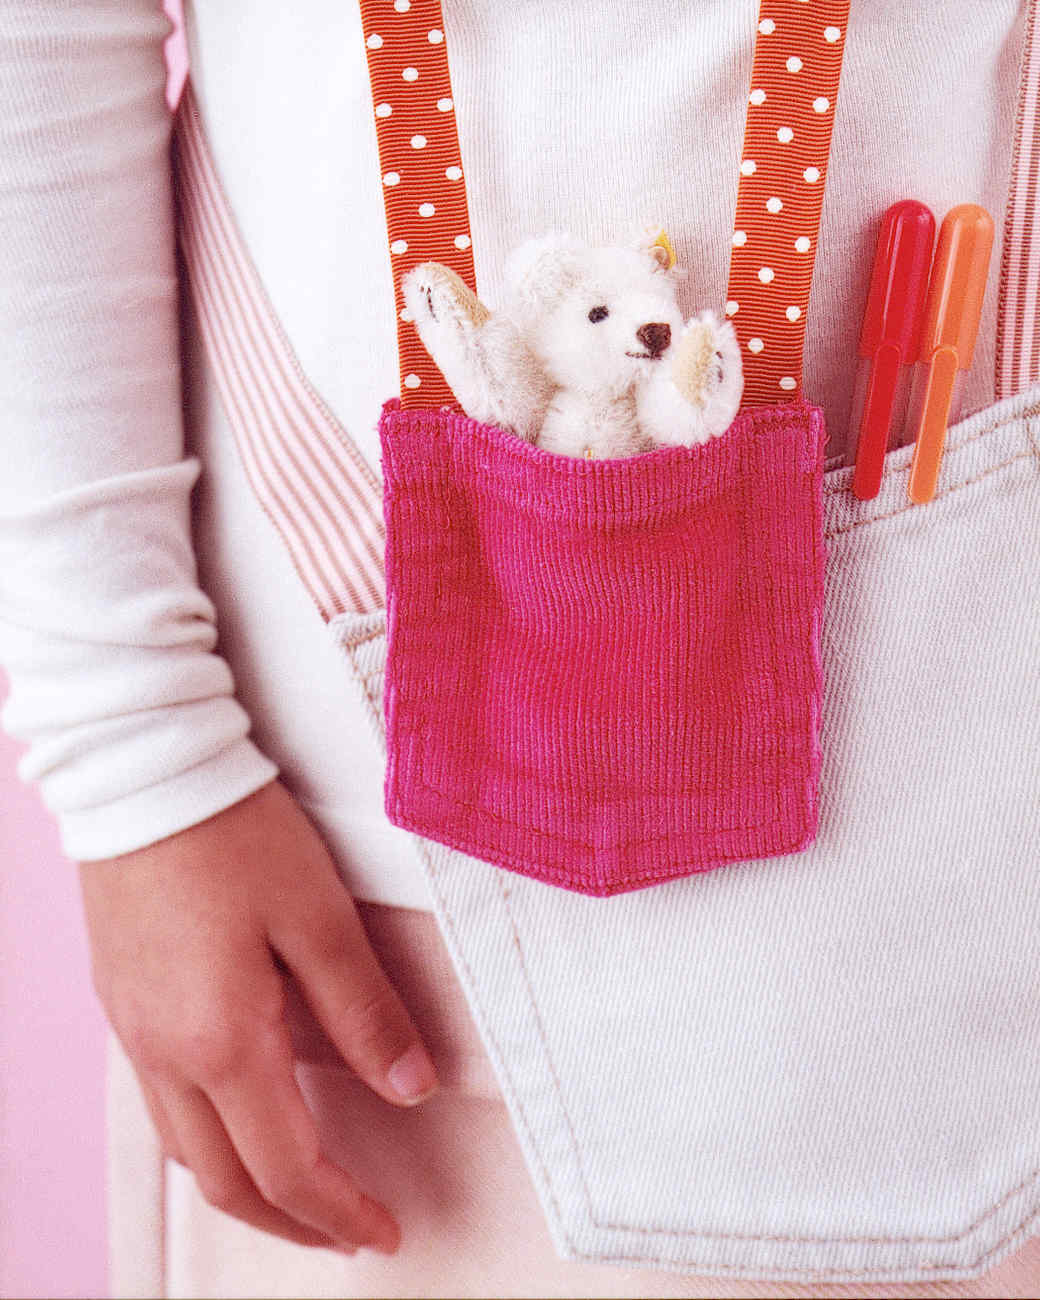 0206_kids_gtpocketpurse.jpg